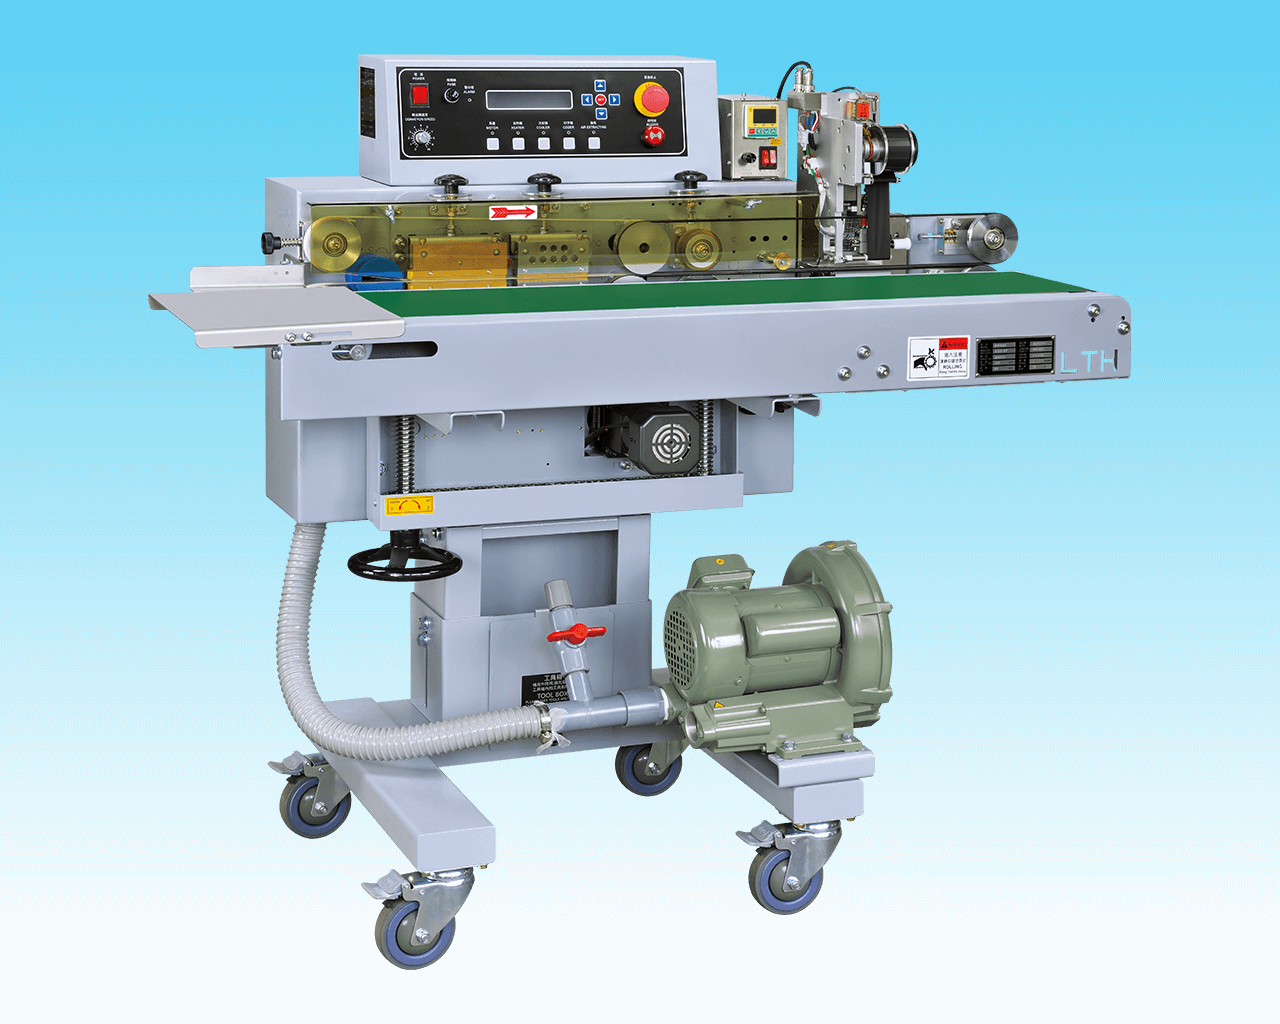 band sealermachine、band sealing、sealing packaging、sealing packaging machine、sealing machinery、sealer machine